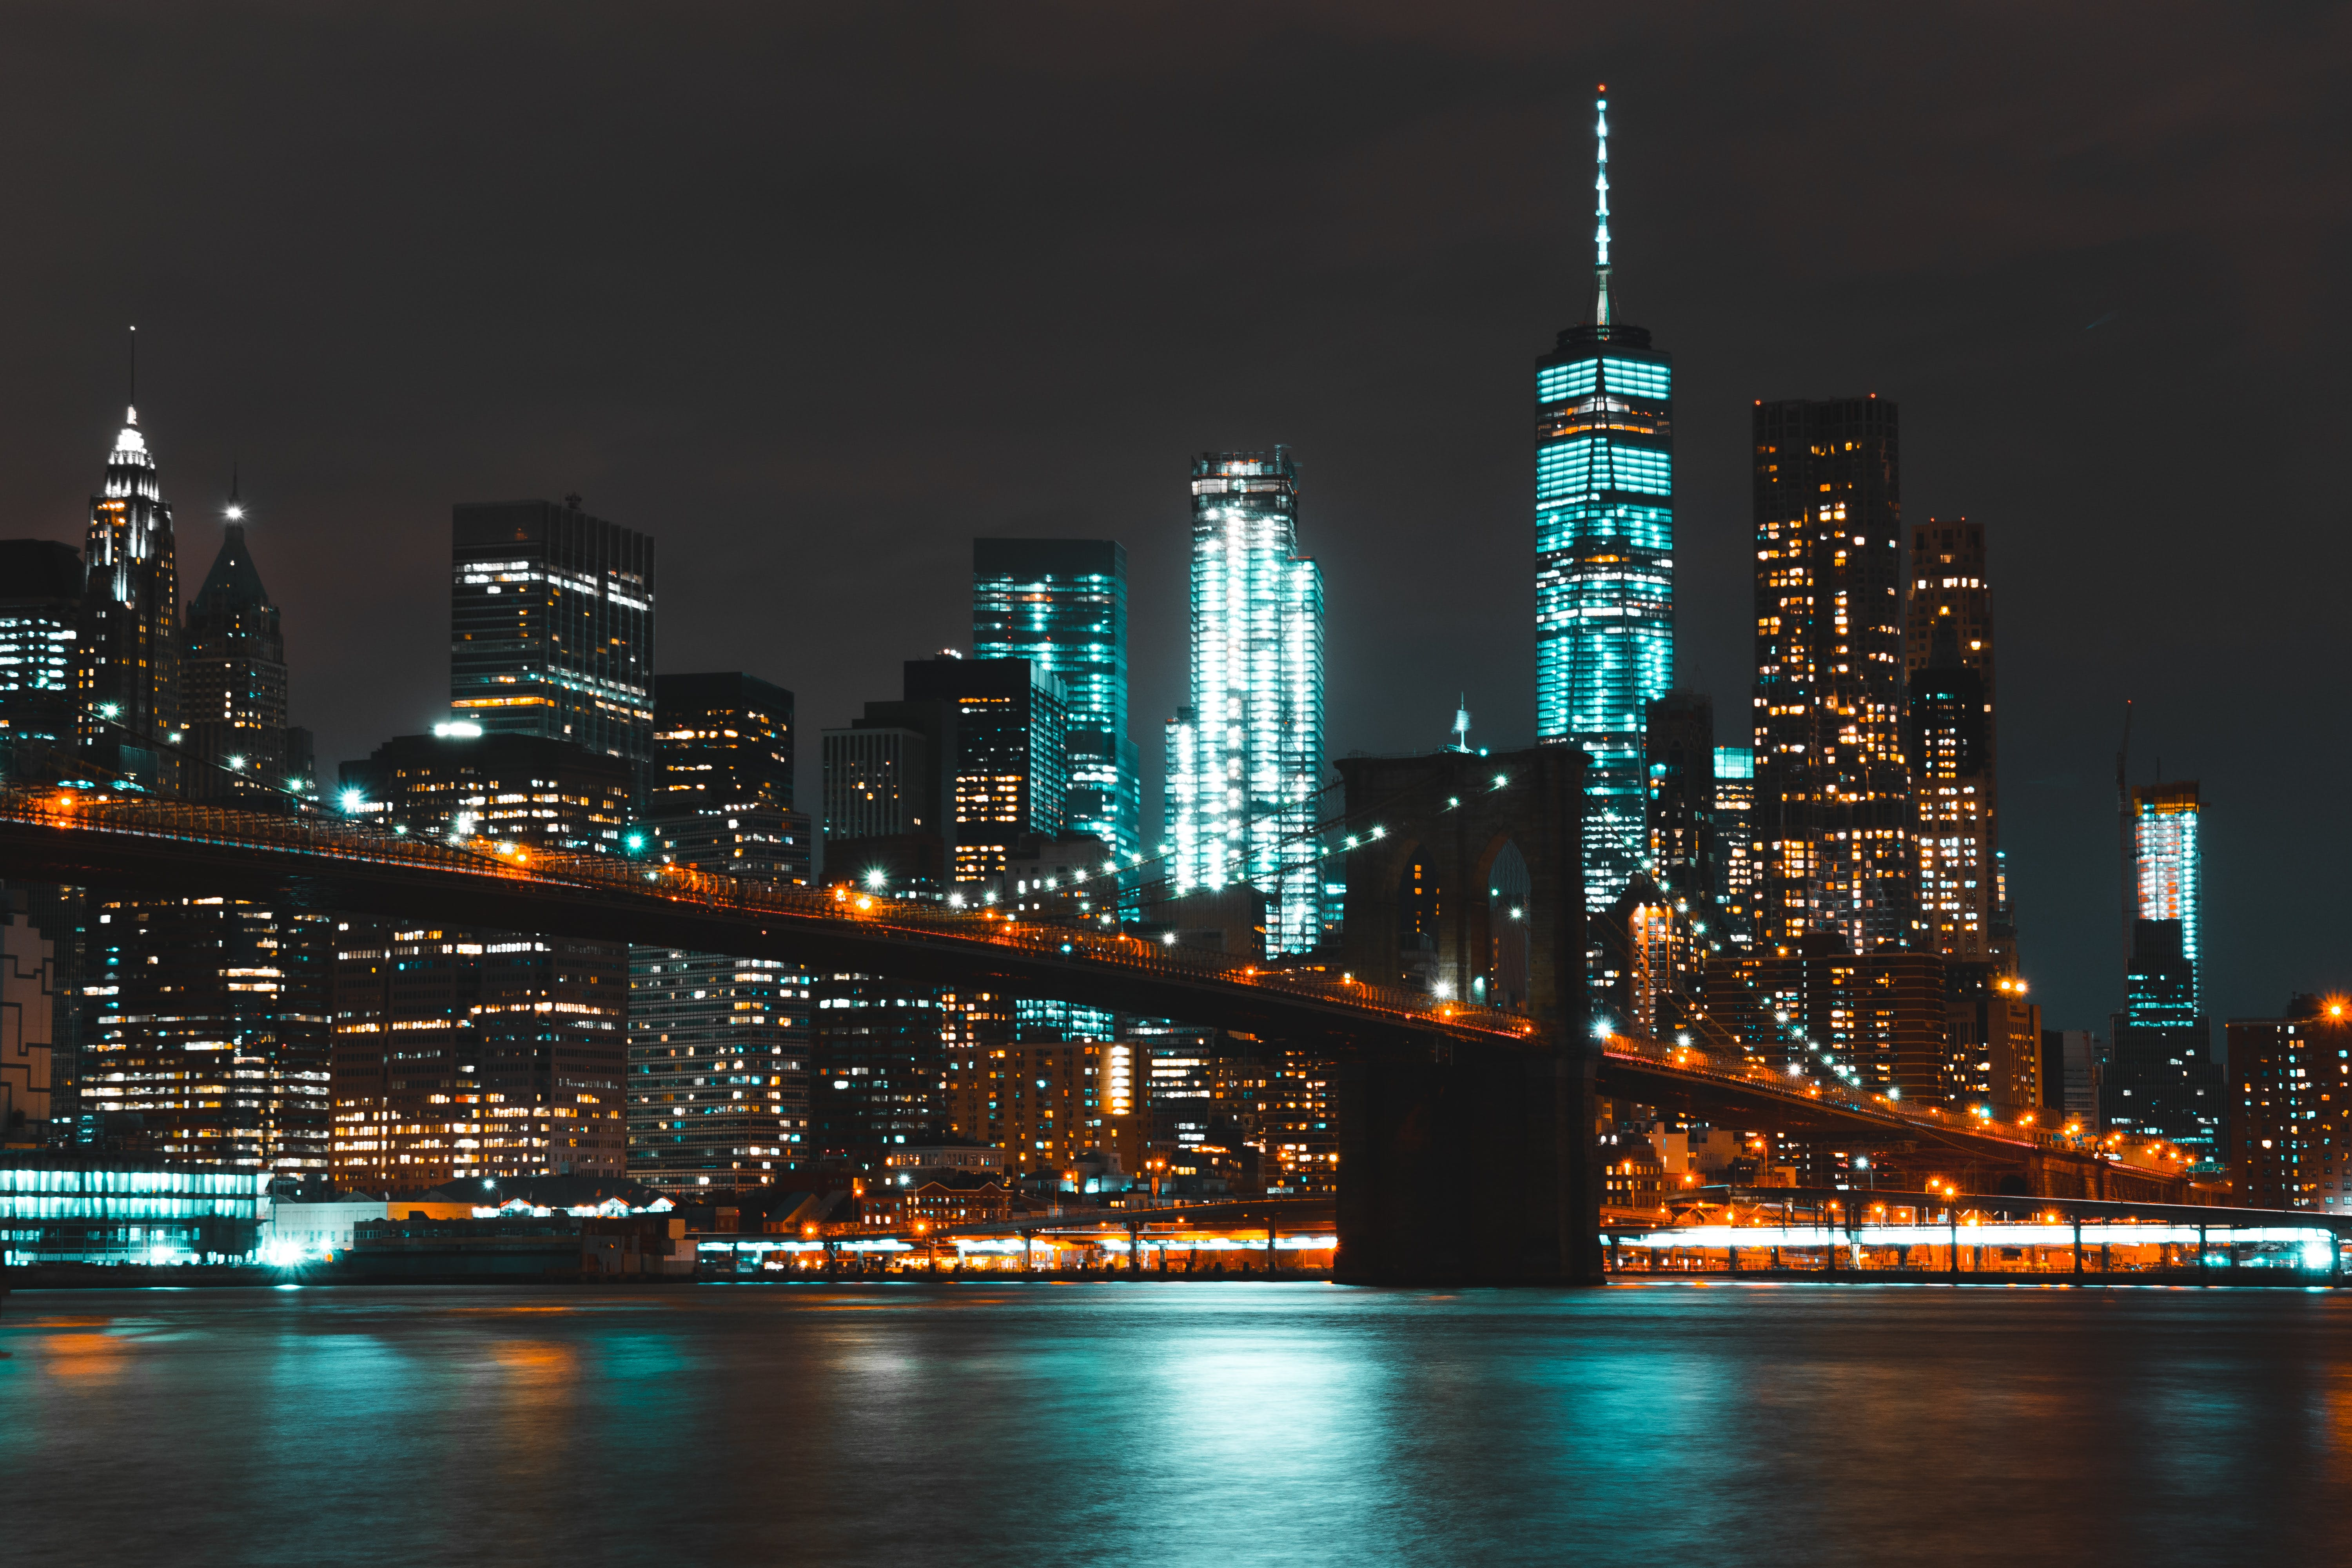 Lighted Brooklyn Bridge during Nighttime